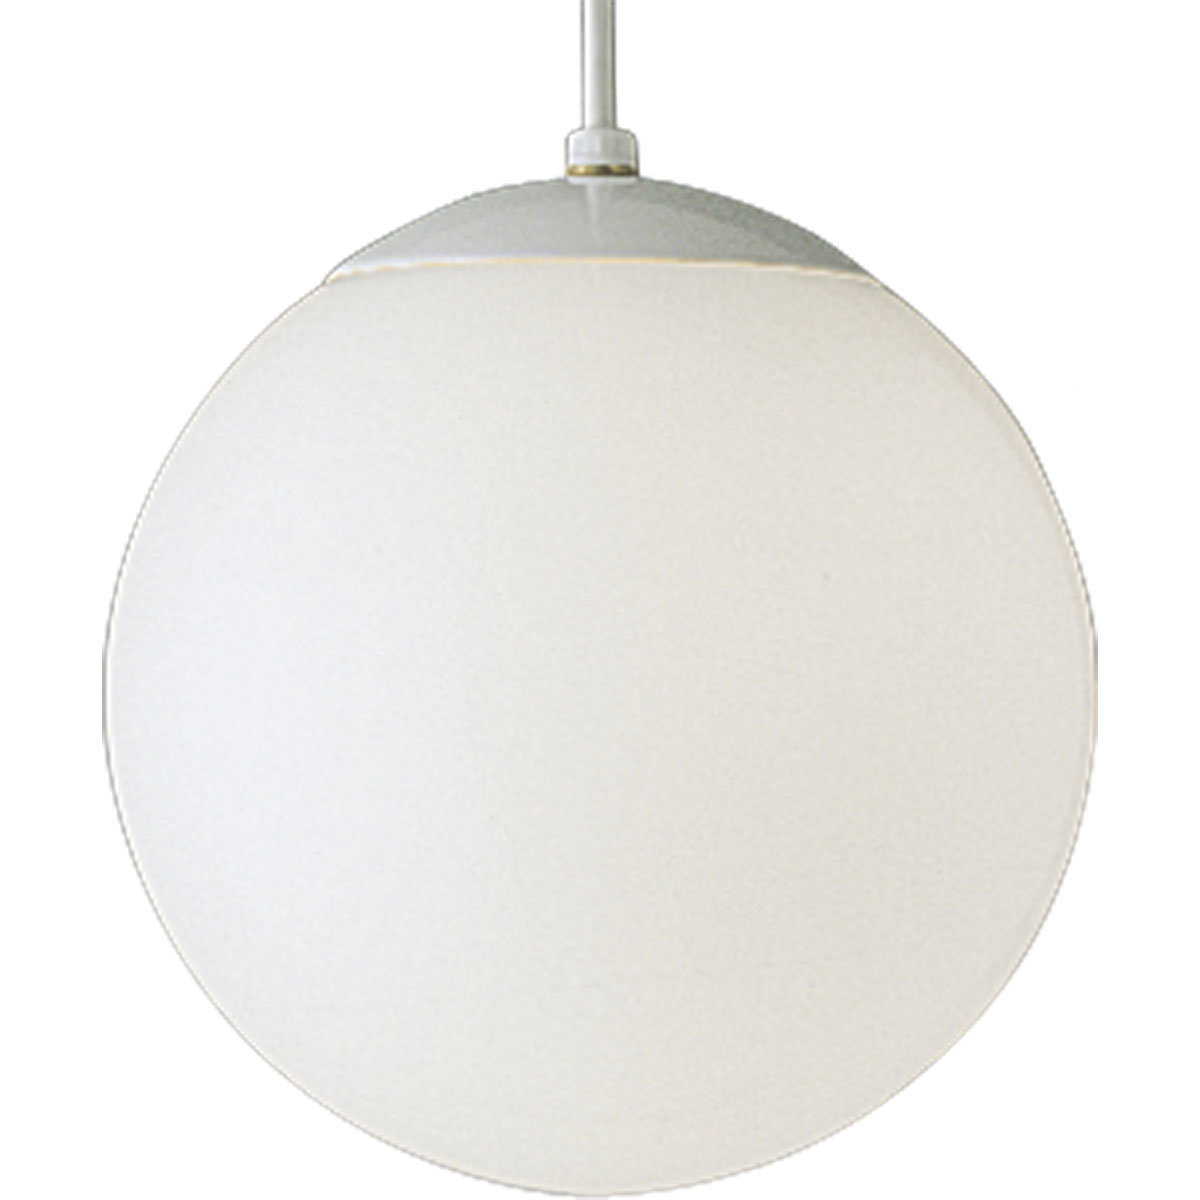 Bautista 1 Light Single Globe Pendants With Regard To Most Recently Released Bylar 1 Light Globe Pendant (View 22 of 25)